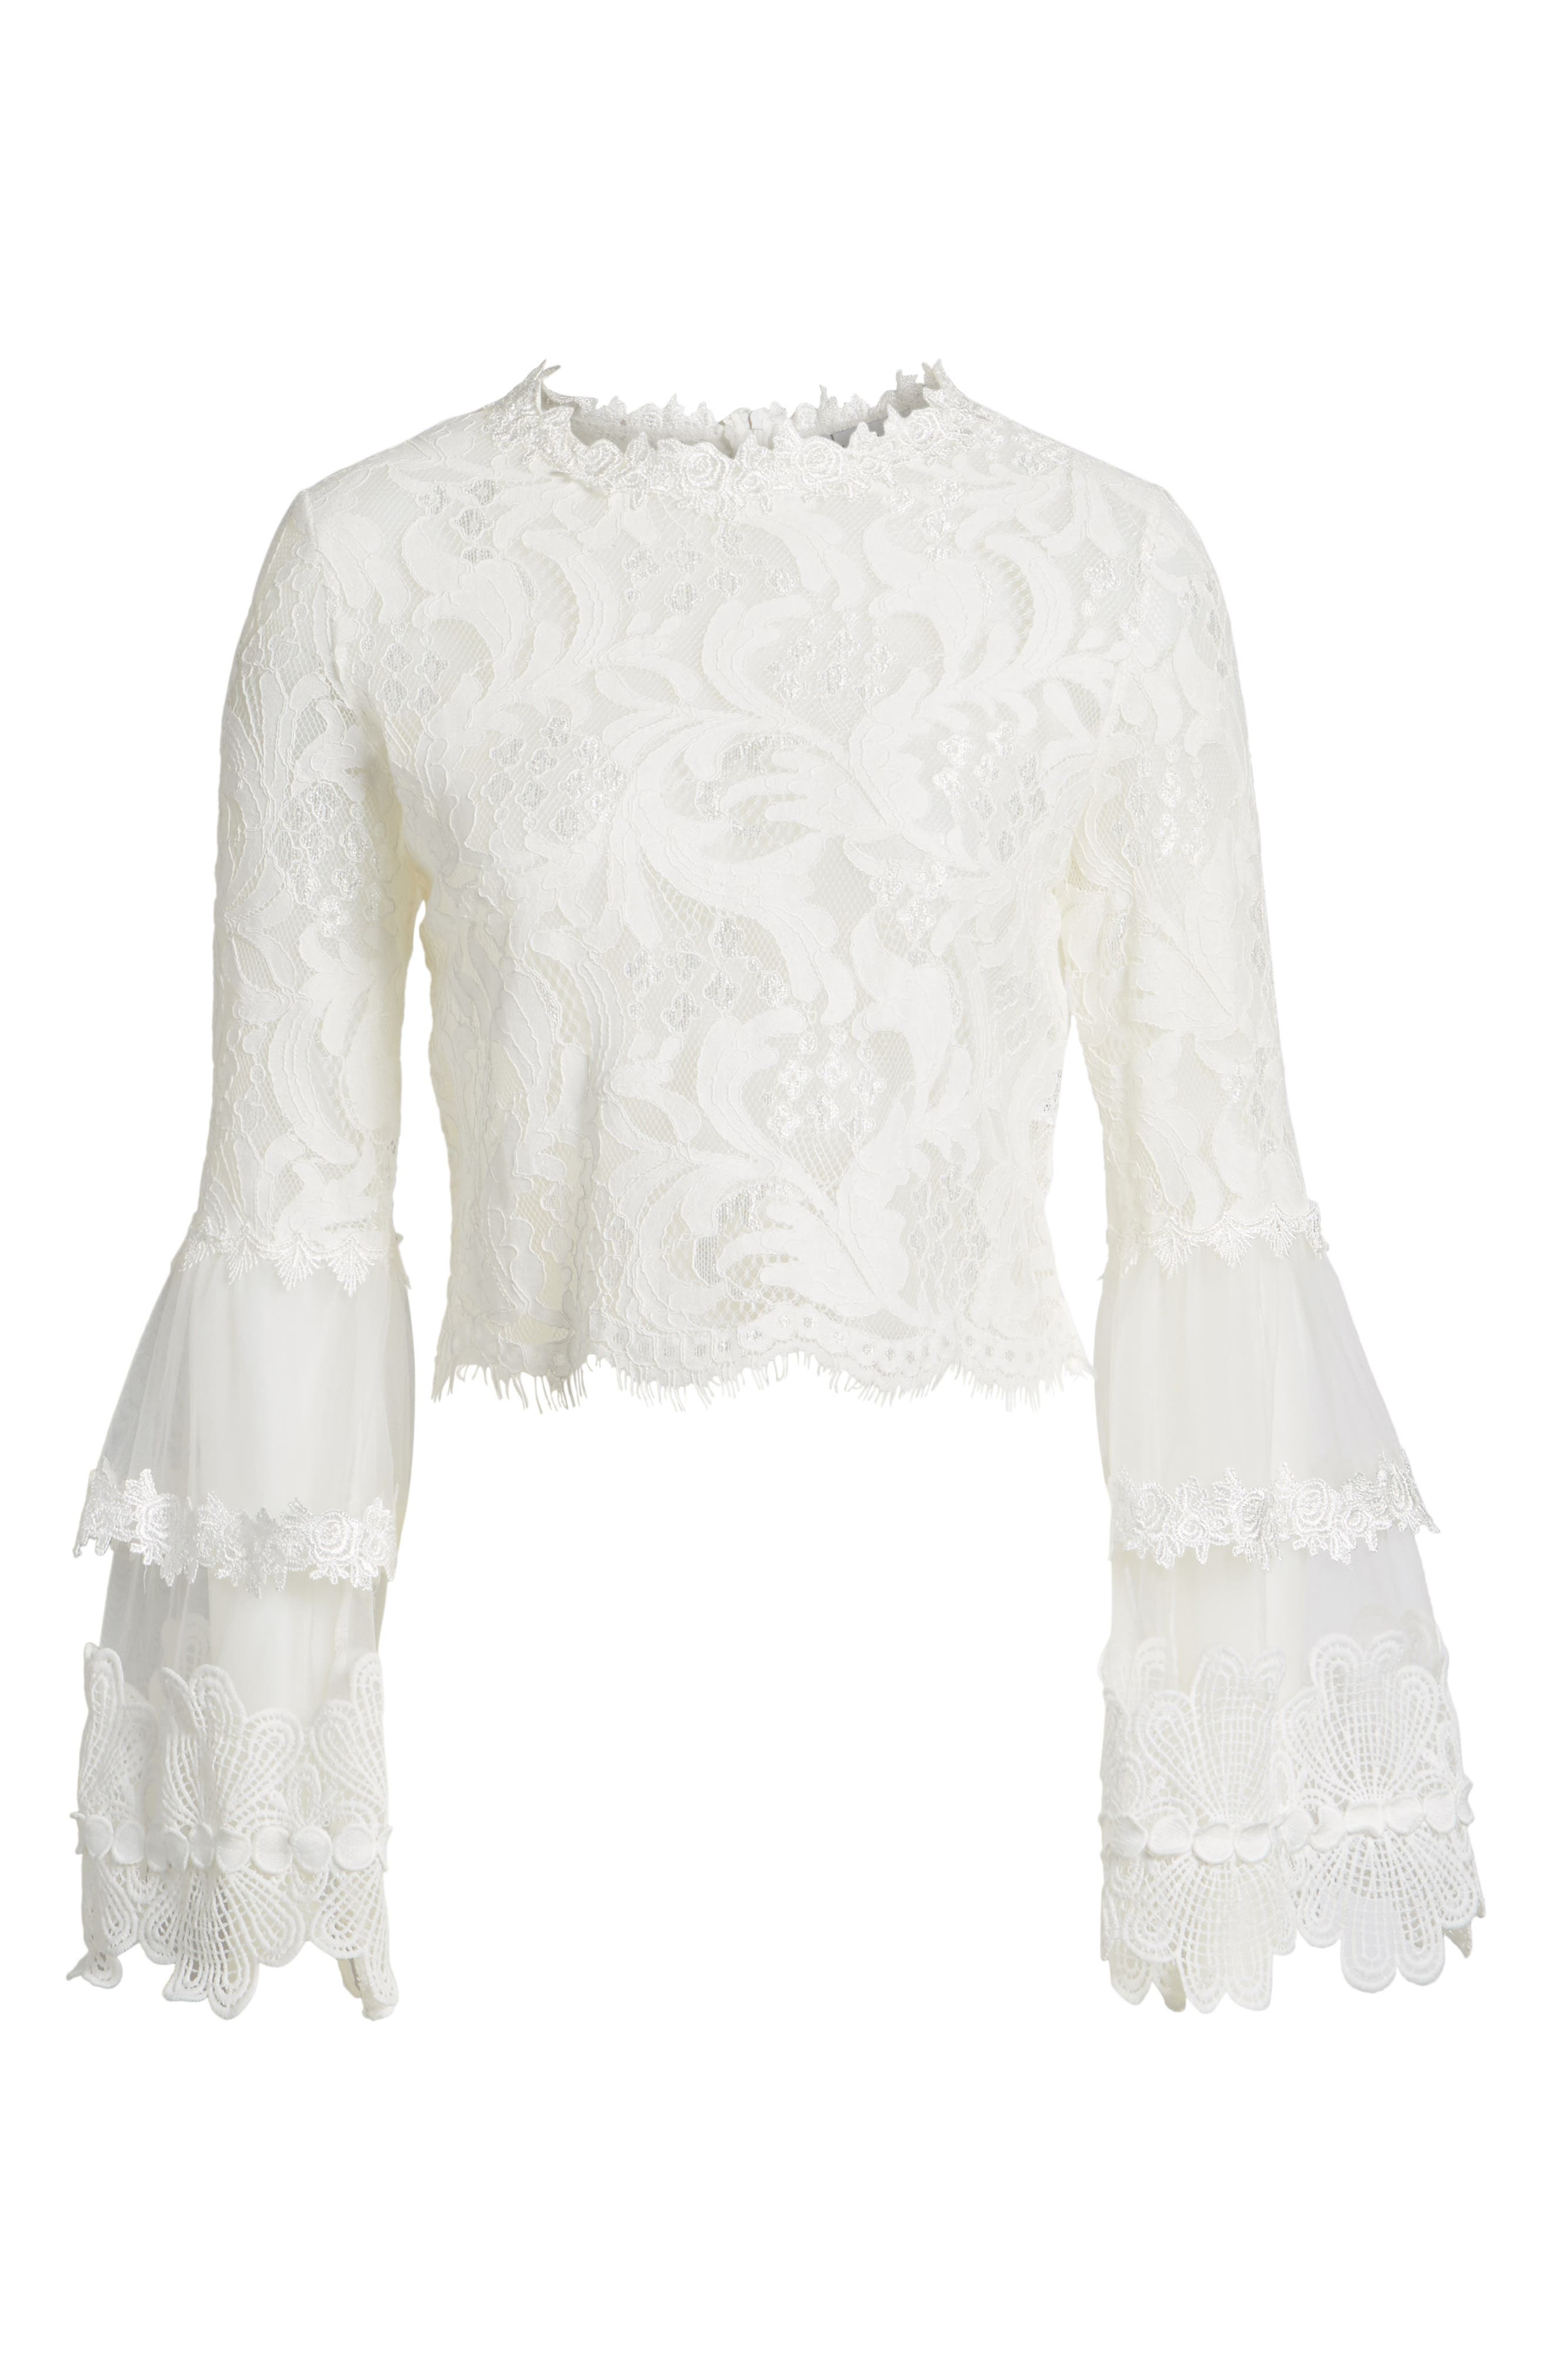 Chancellor Lace Top,                             Alternate thumbnail 5, color,                             White